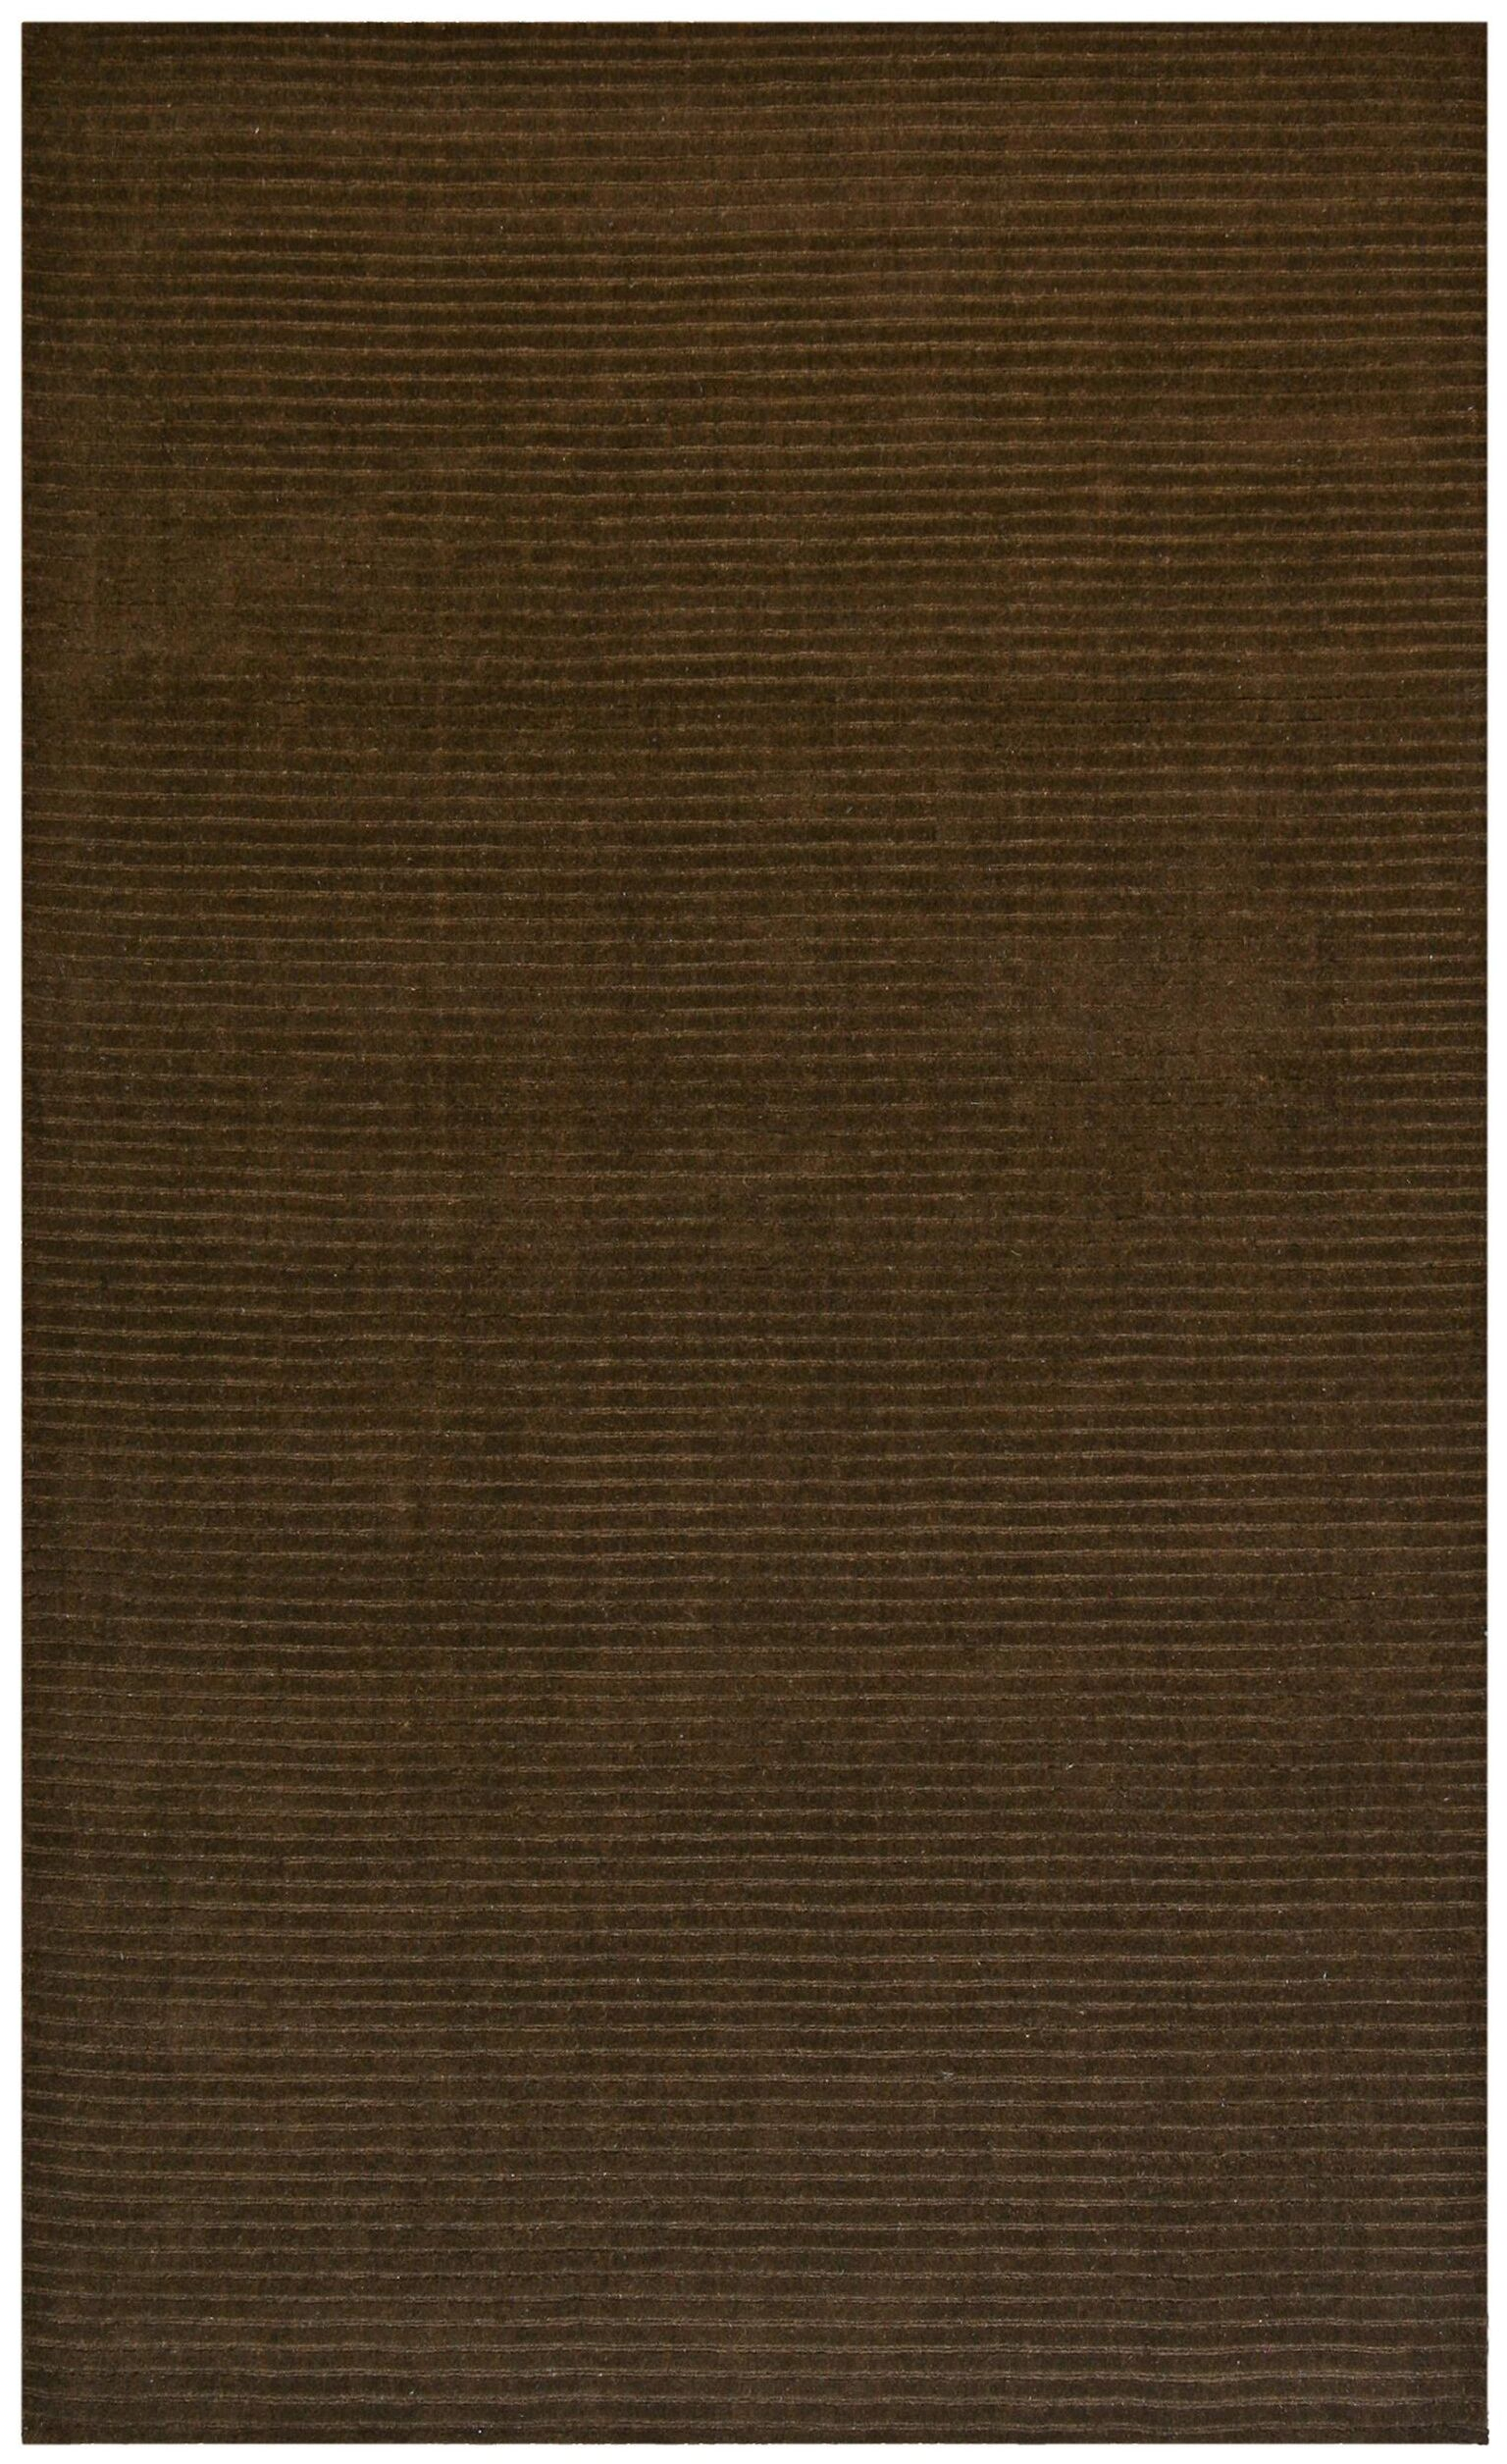 Pulse Brown Rug Rug Size: Rectangle 8' x 10'